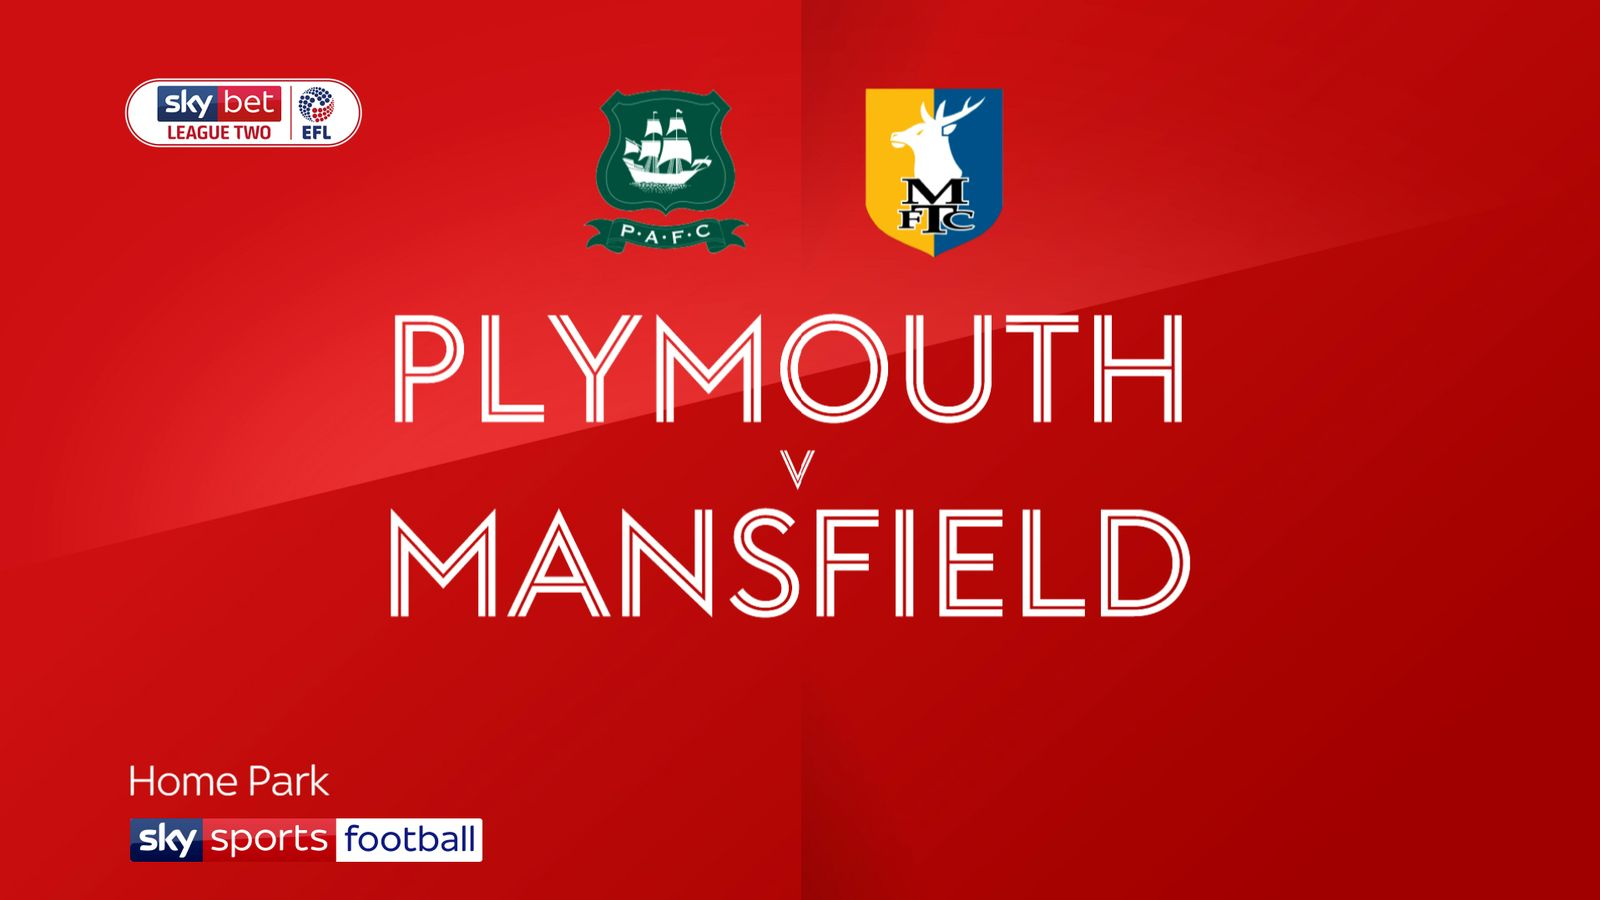 Plymouth 3-1 Mansfield: Argyle win third League Two game in succession